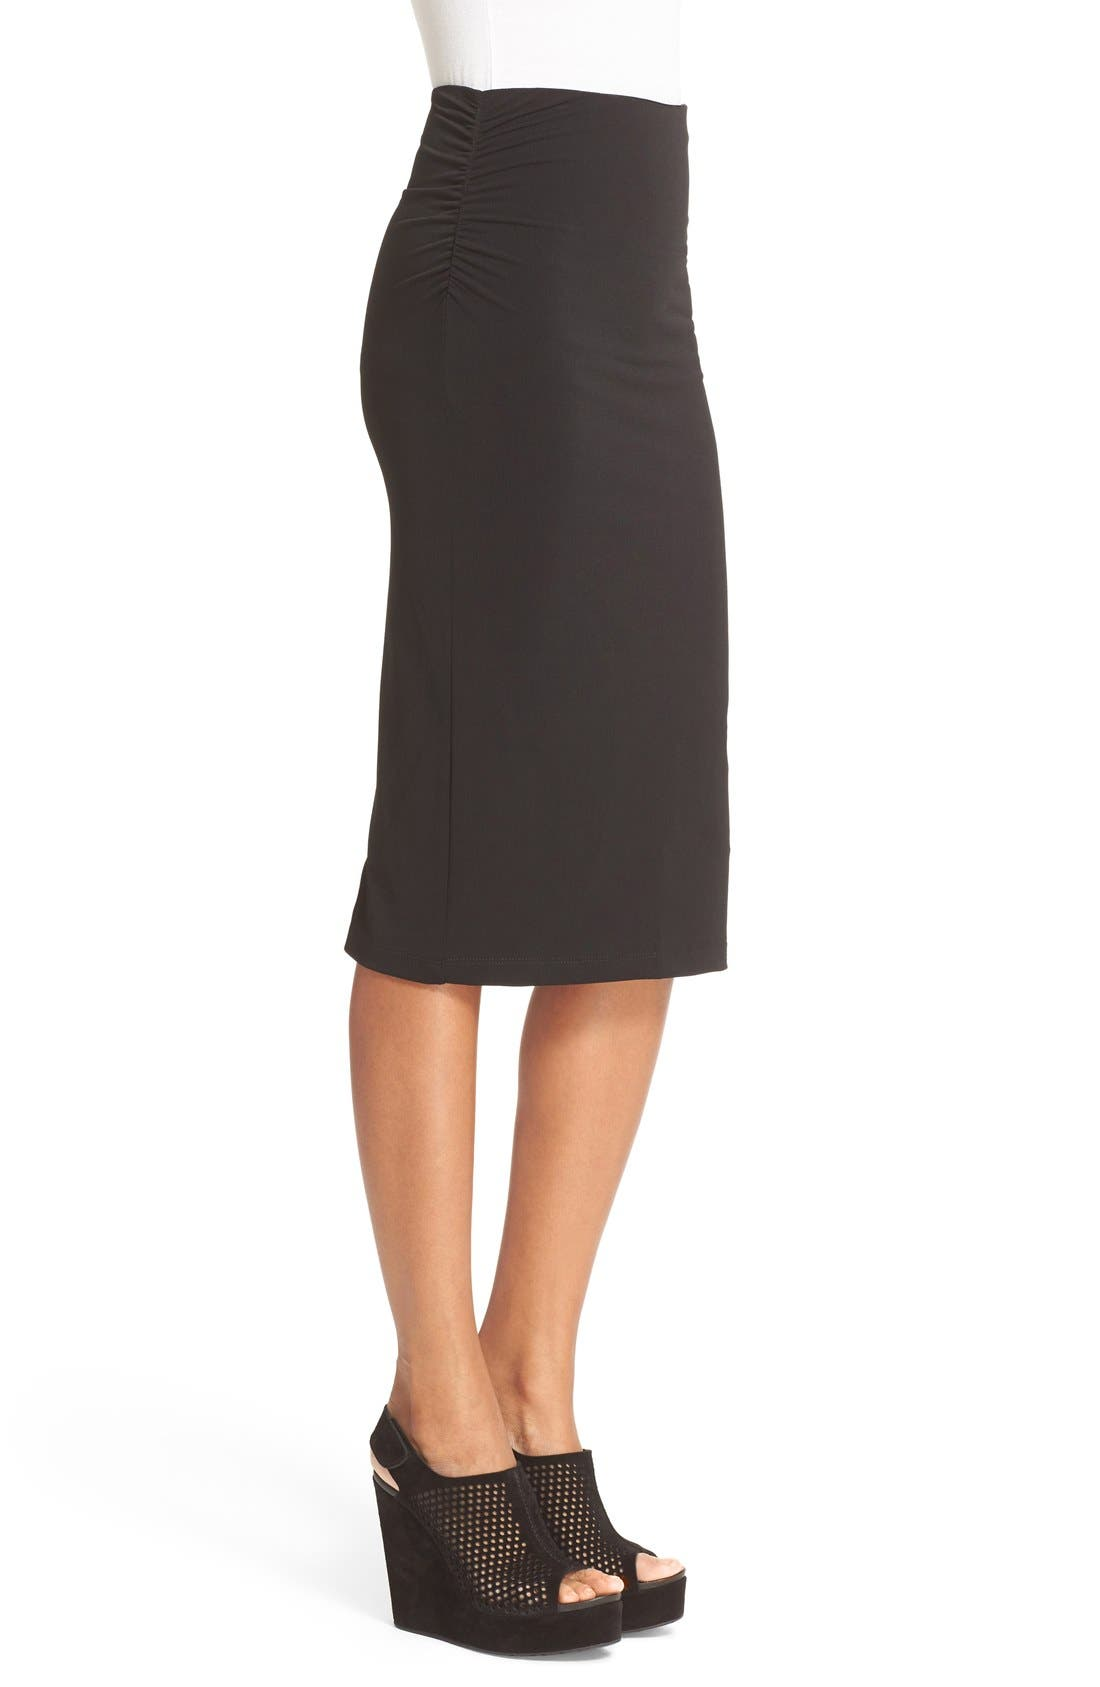 ALICE + OLIVIA,                             Ciera Side Ruched High Waist Pencil Skirt,                             Alternate thumbnail 4, color,                             001